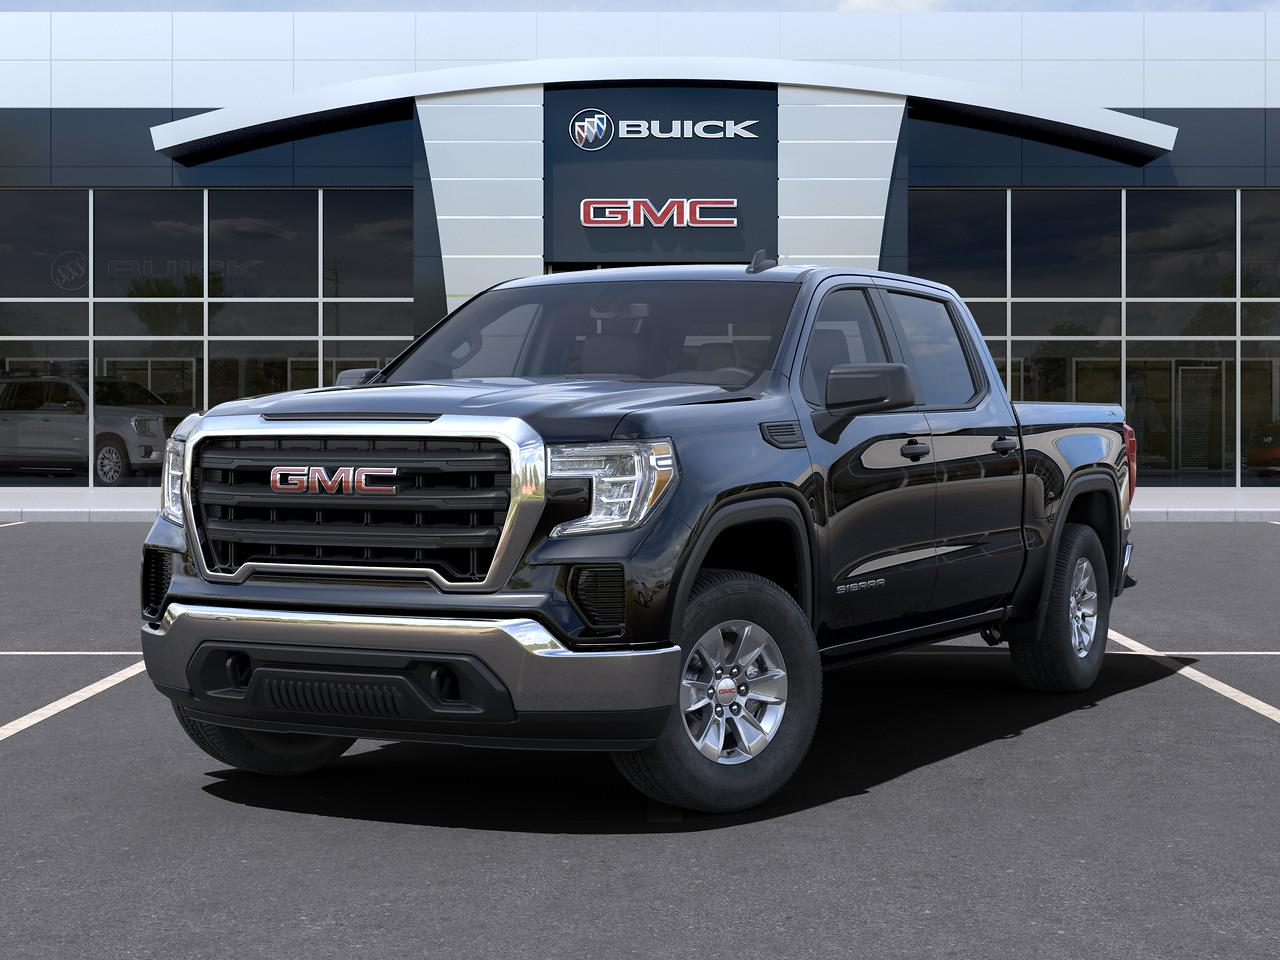 2021 GMC Sierra 1500 Crew Cab 4x4, Pickup #23603 - photo 6